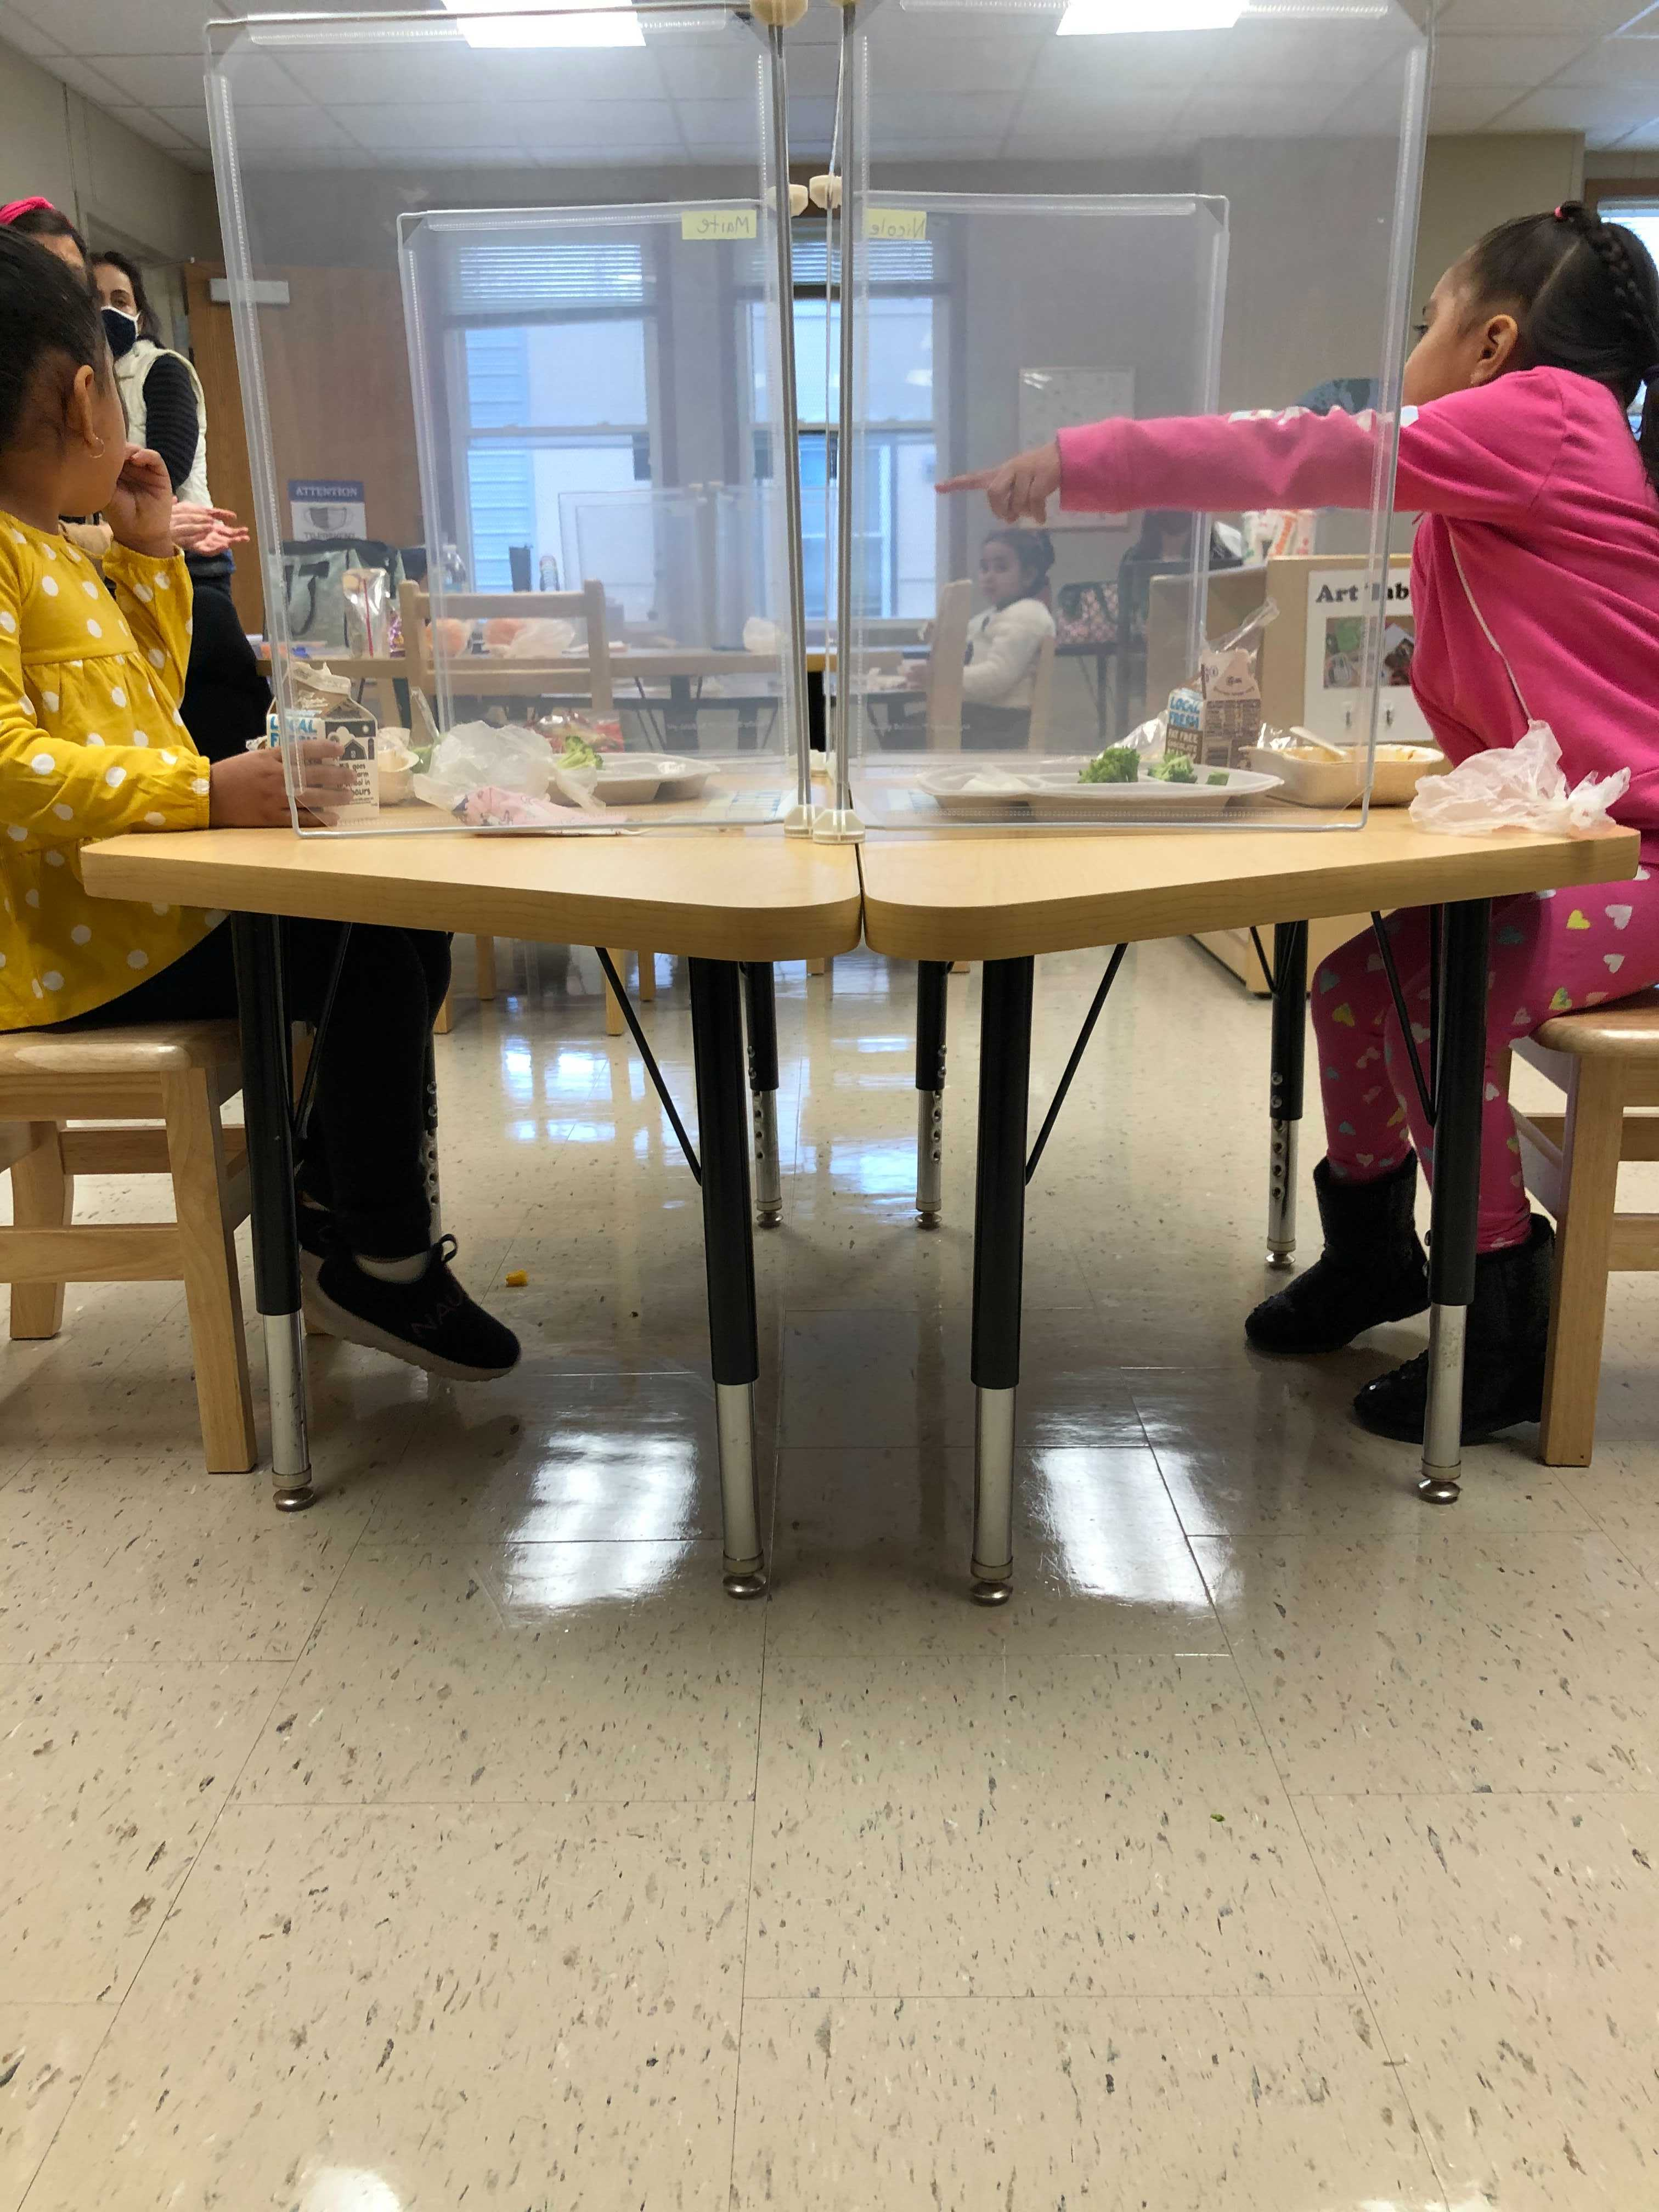 Pre-kindergarten students eat lunch at their desks under new COVID-19 rules in Chicago schools.